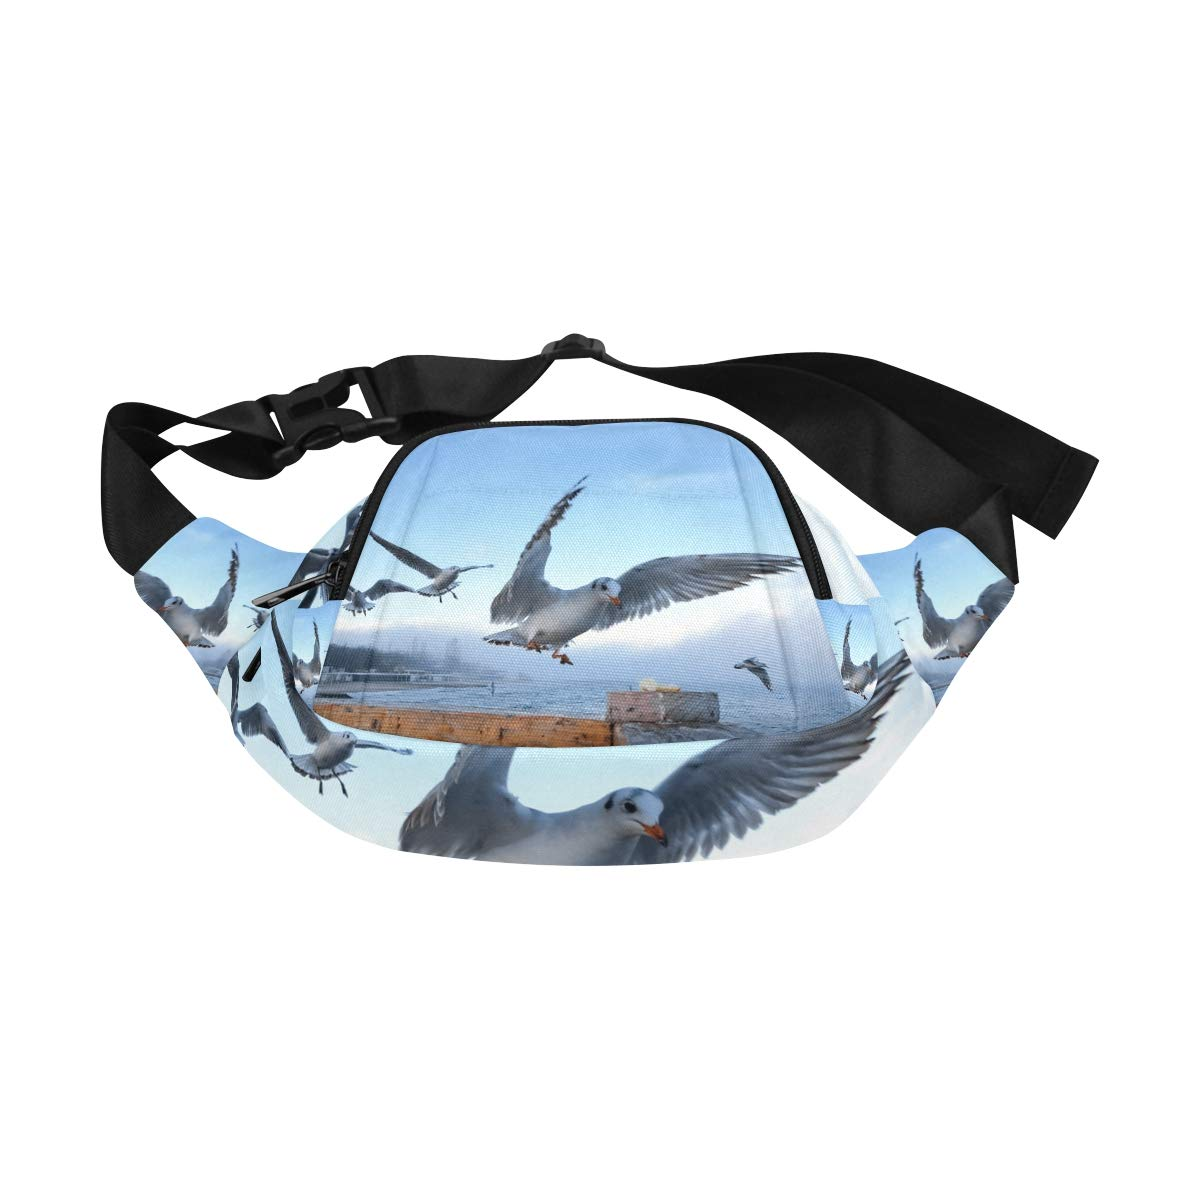 Gulls Flying Above Body Of Water Fenny Packs Waist Bags Adjustable Belt Waterproof Nylon Travel Running Sport Vacation Party For Men Women Boys Girls Kids